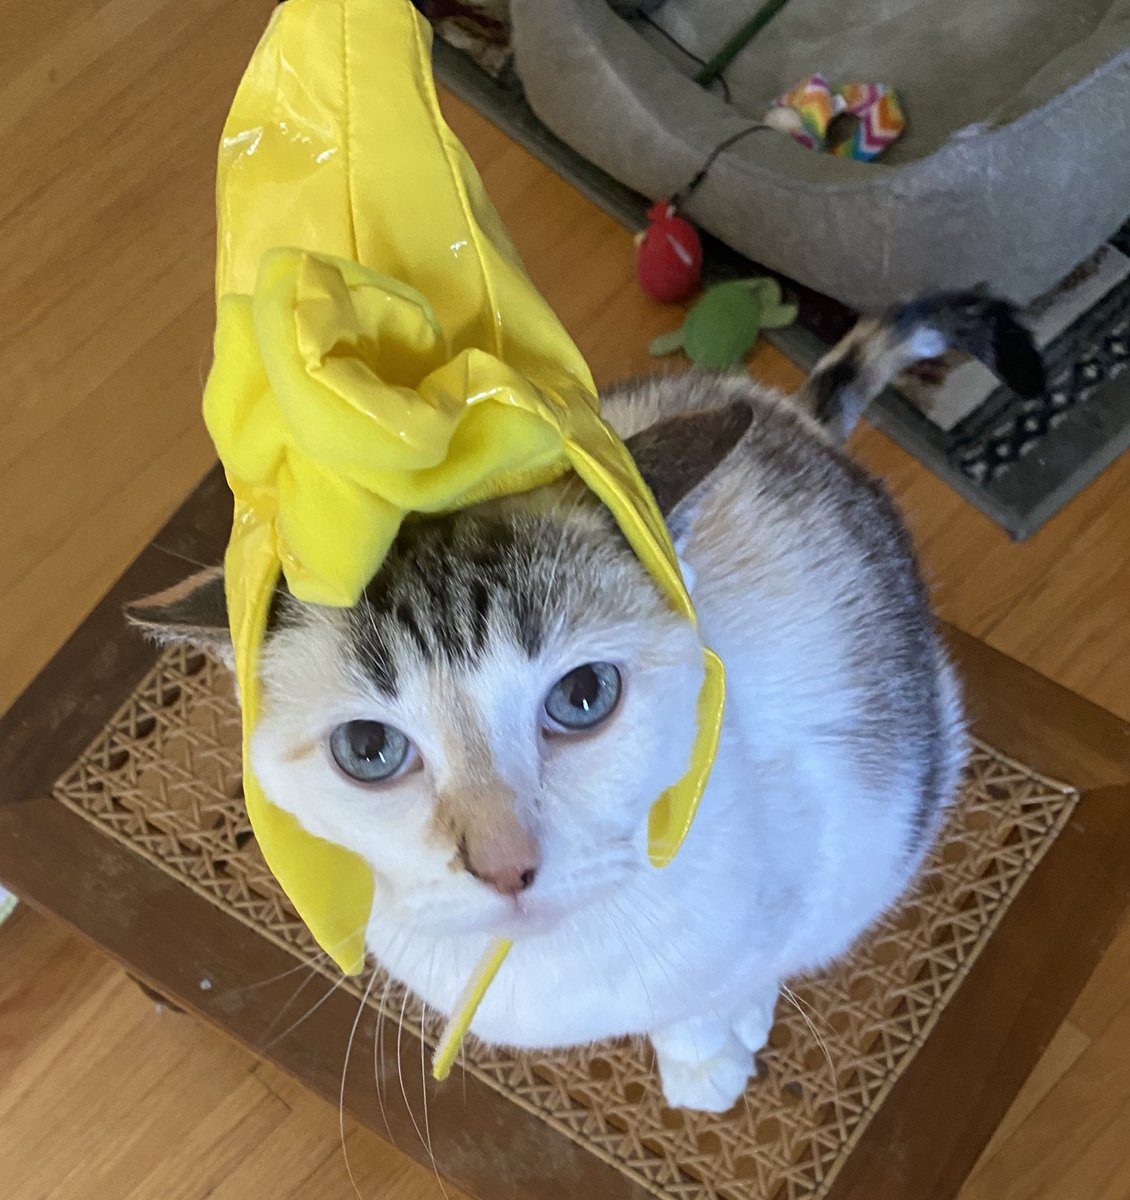 Pincy's #Halloween joke of the day: What do you call a tired skeleton on Halloween? The grim sleeper.  P.S. I'm a banana. https://t.co/8sGG7kf8P3